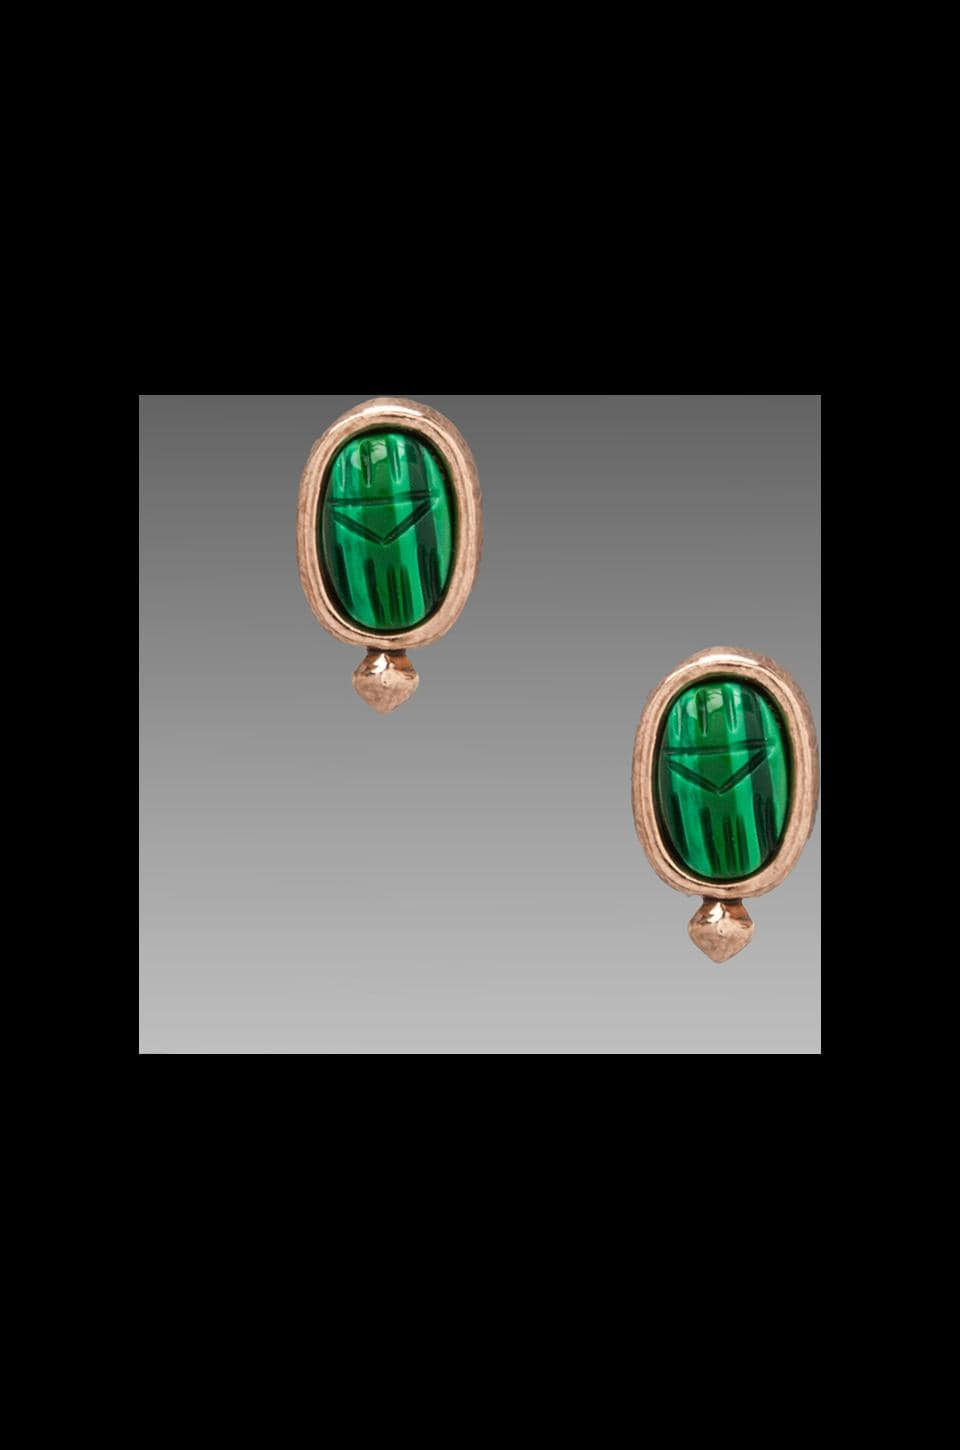 House of Harlow 1960 House of Harlow Khepri Stud Earrings in Rosegold